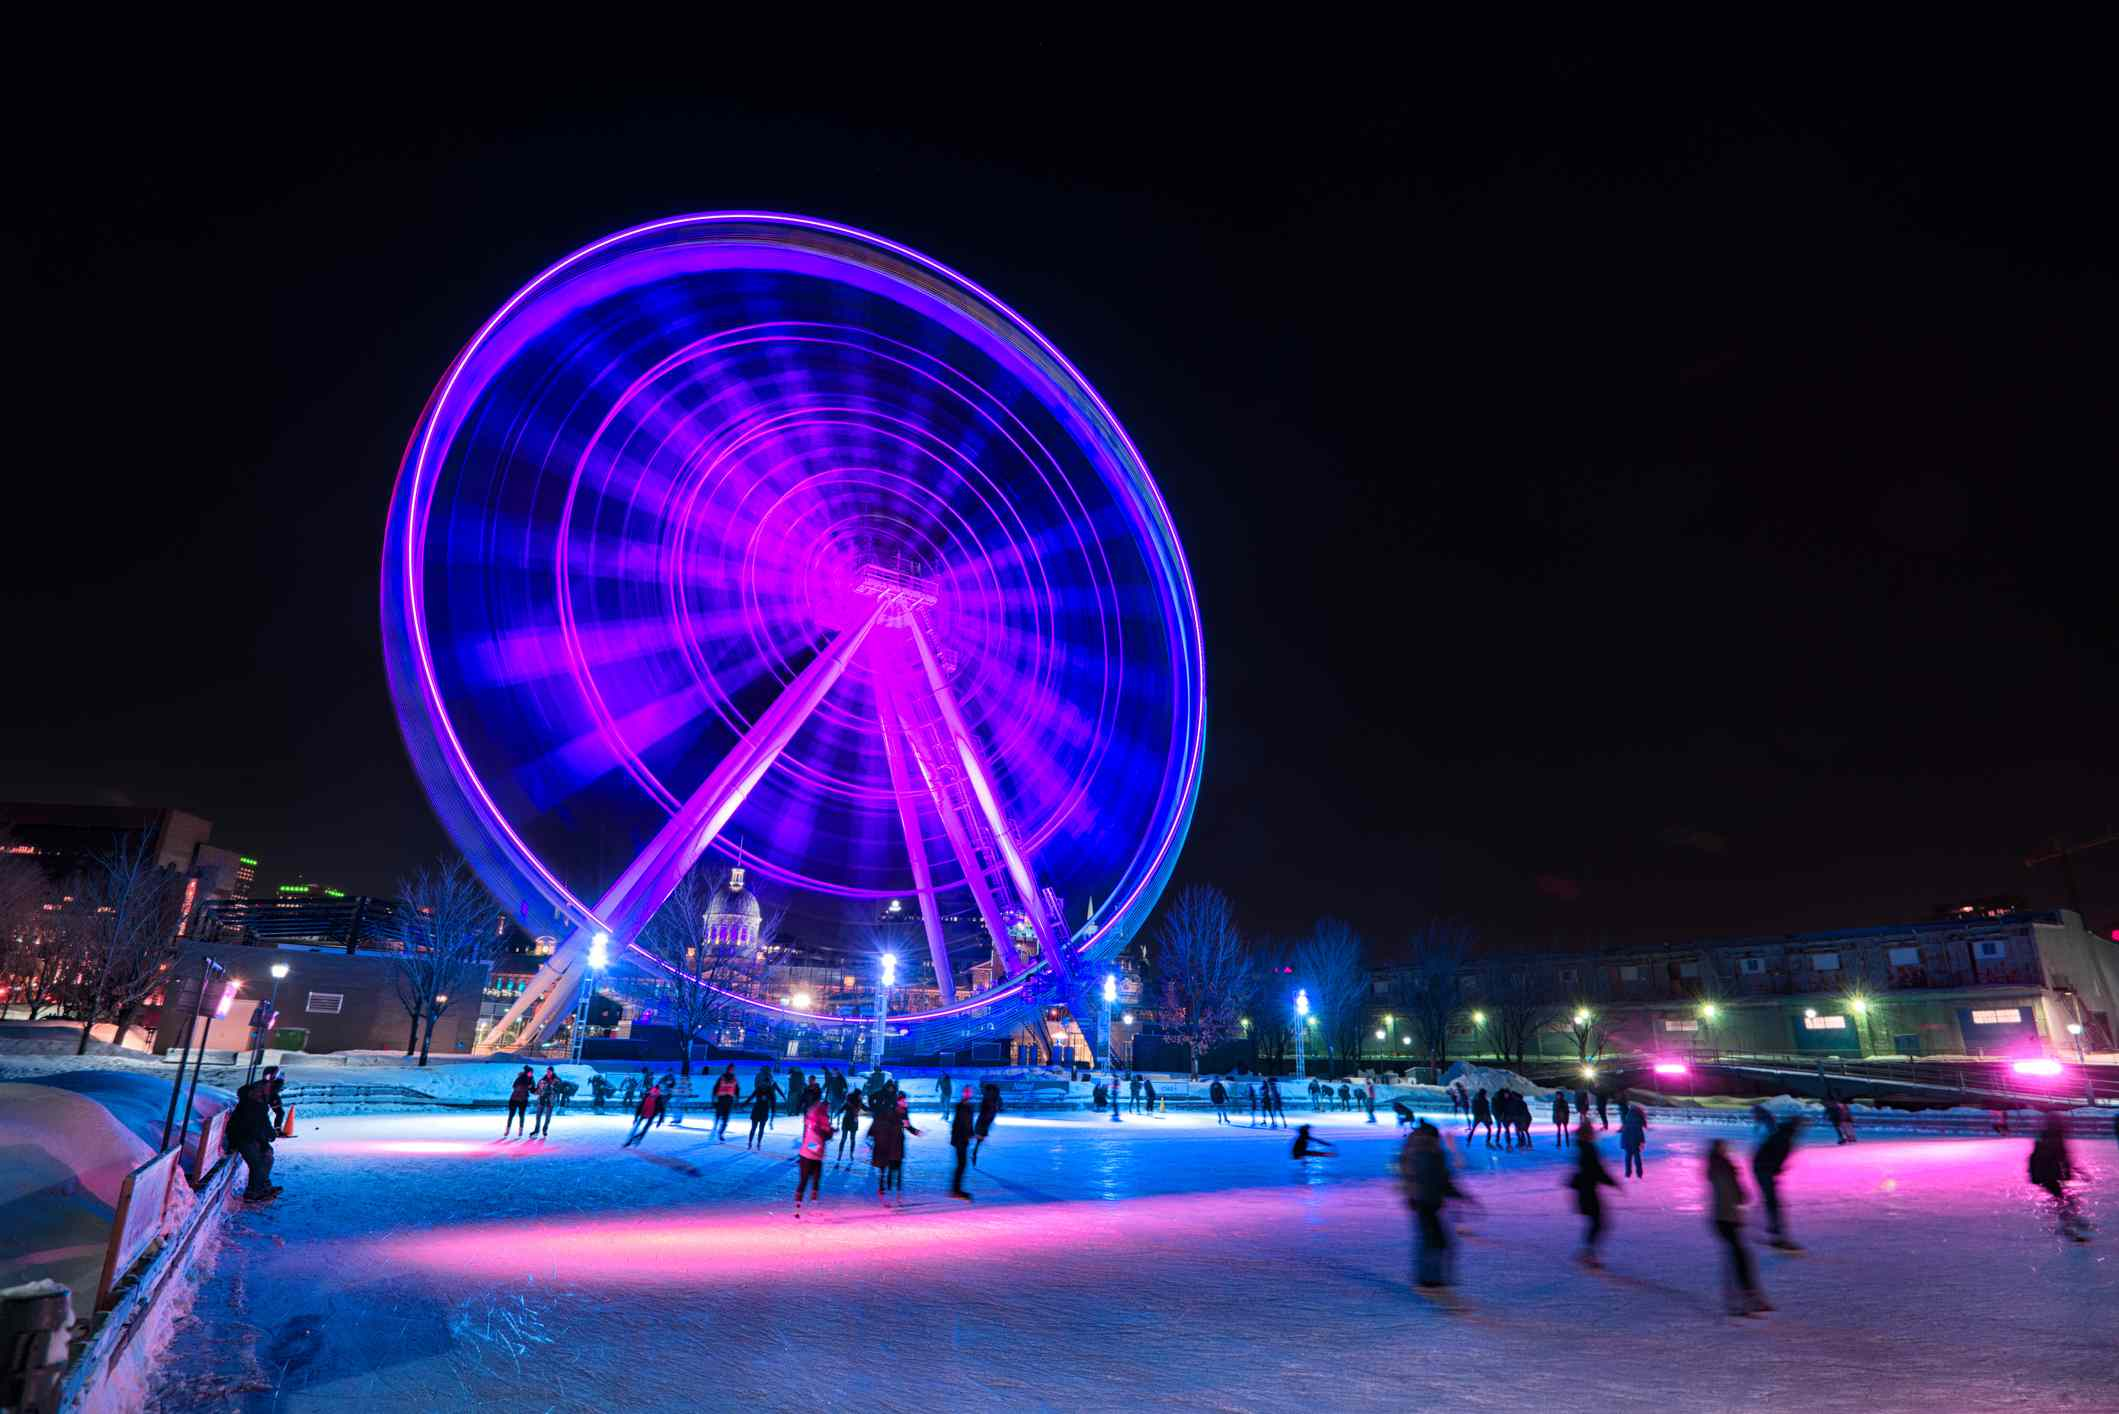 People are ice skating on the ice rink of Parc du Bassin Bonsecours.